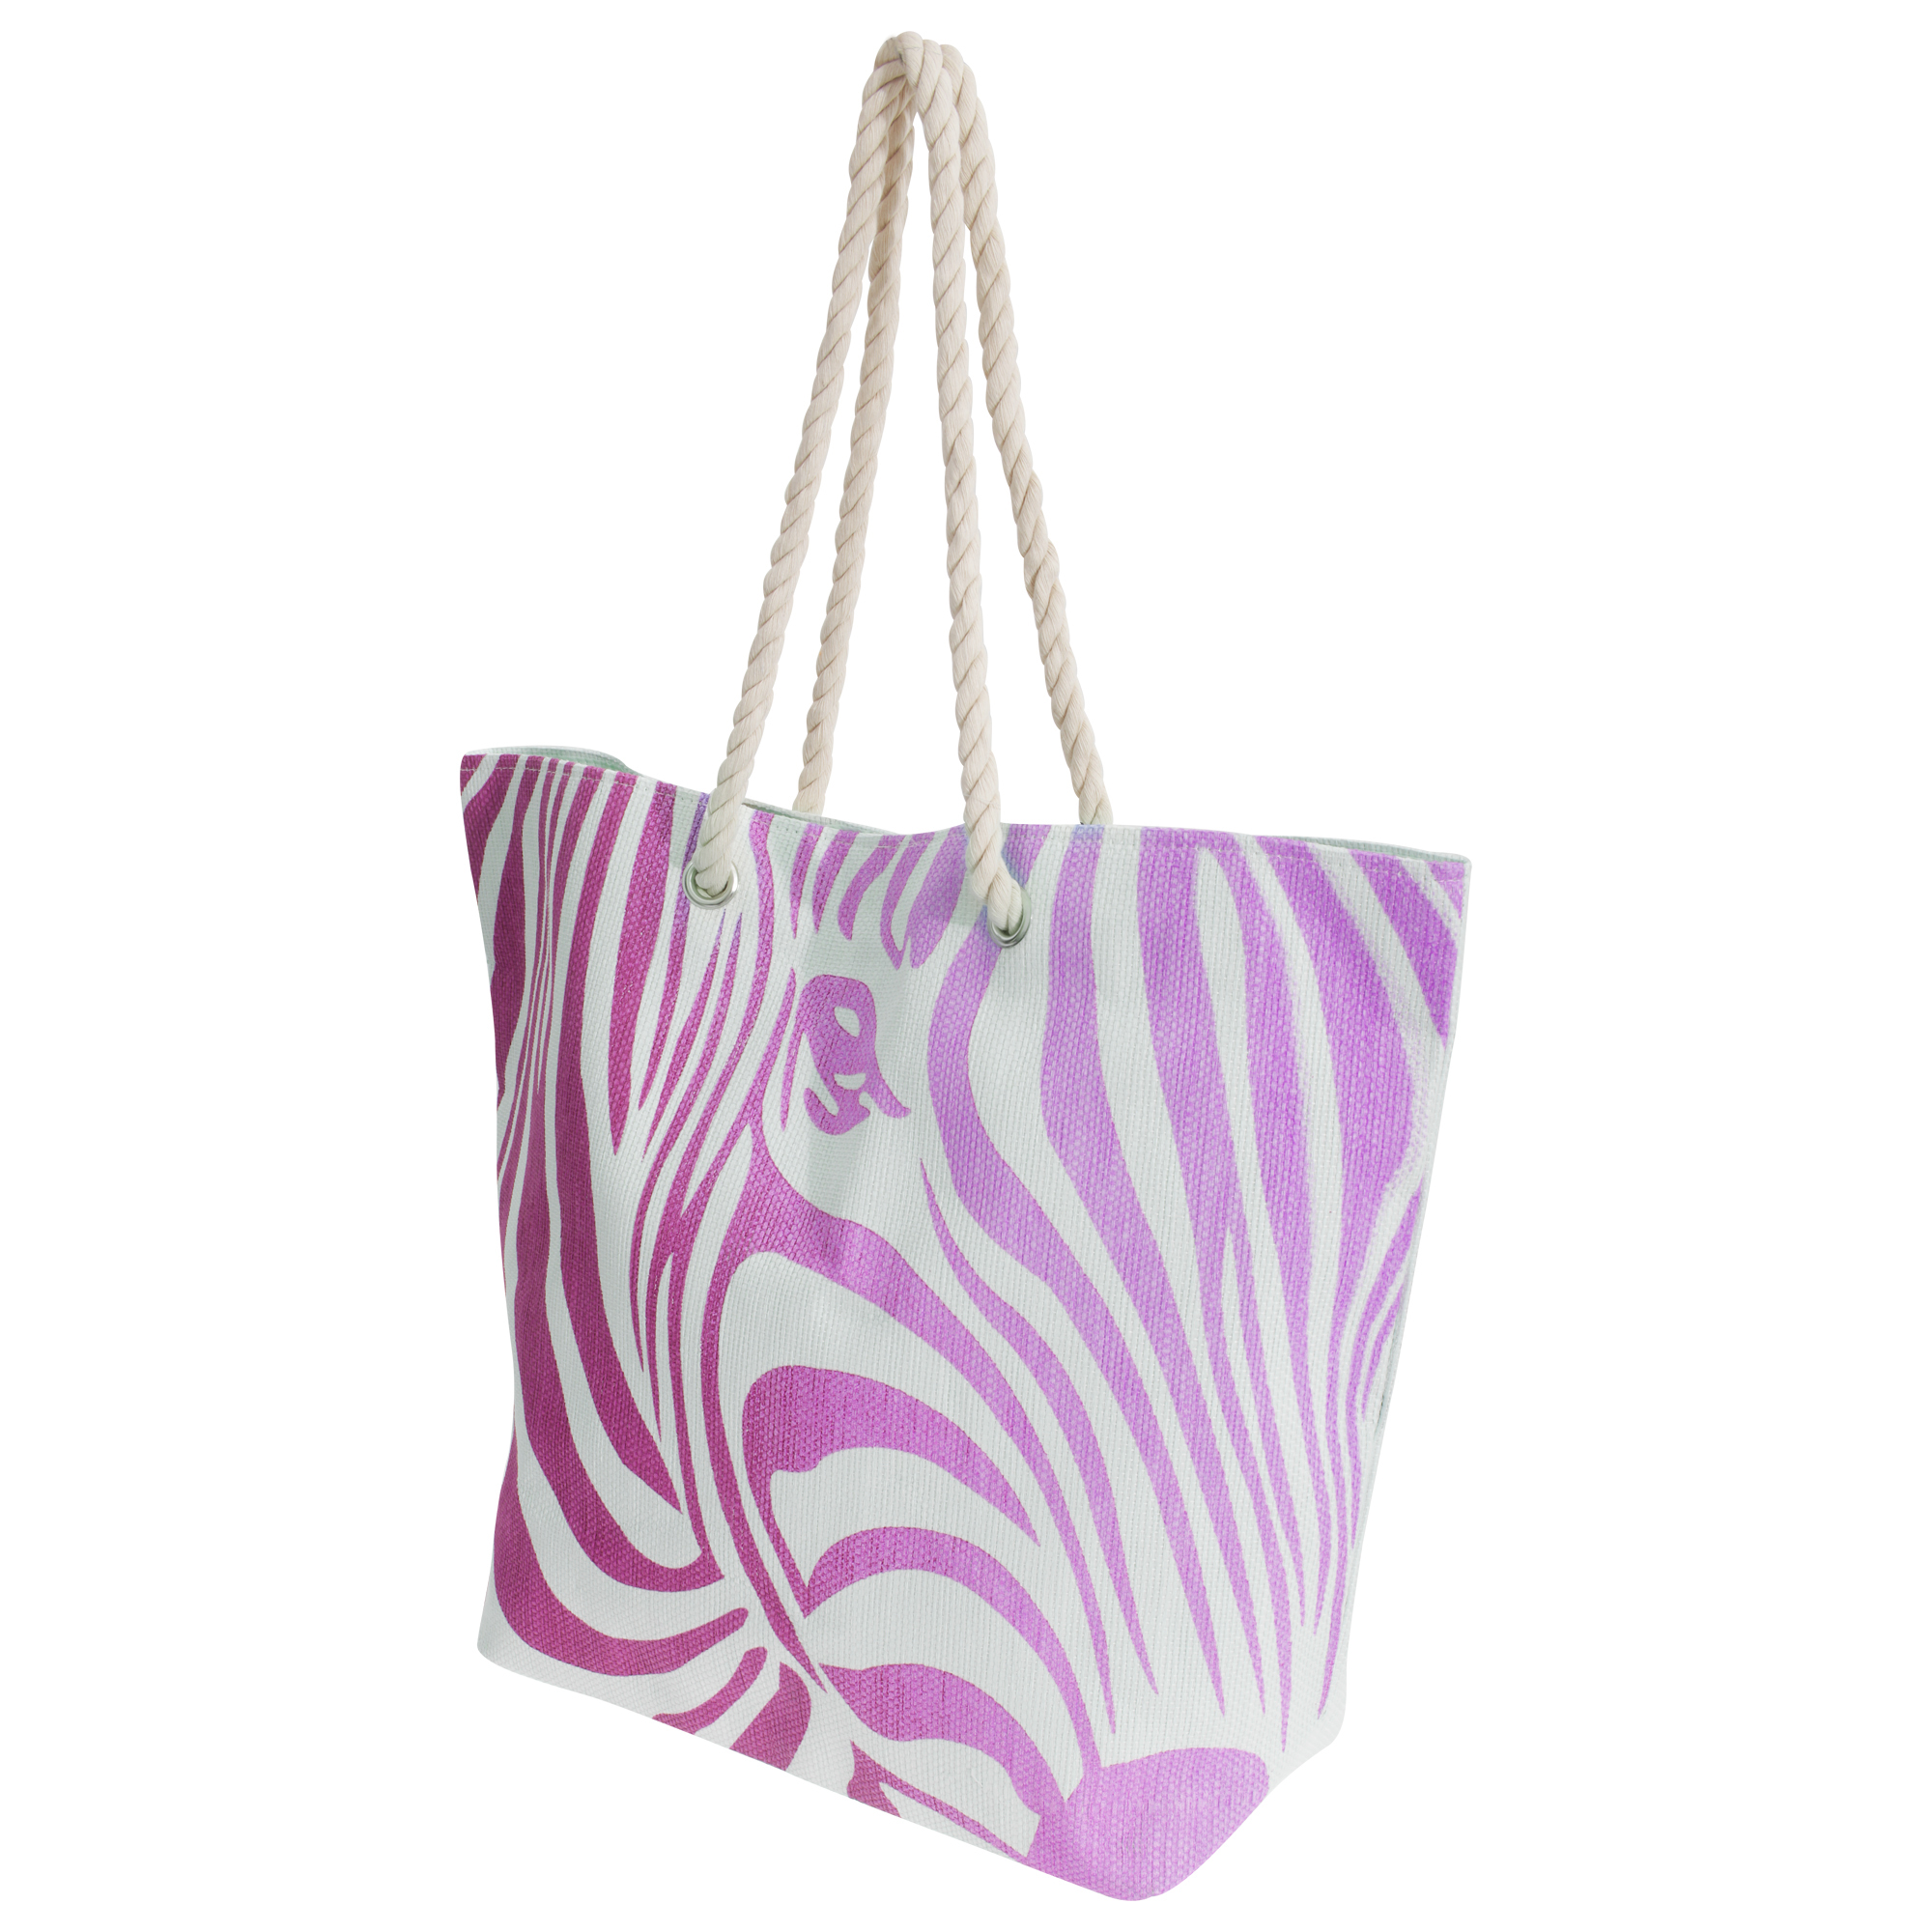 FLOSO Womens/Ladies Zebra Stripe Patterned Straw Woven Summer Handbag (One Size) (White/Pink)